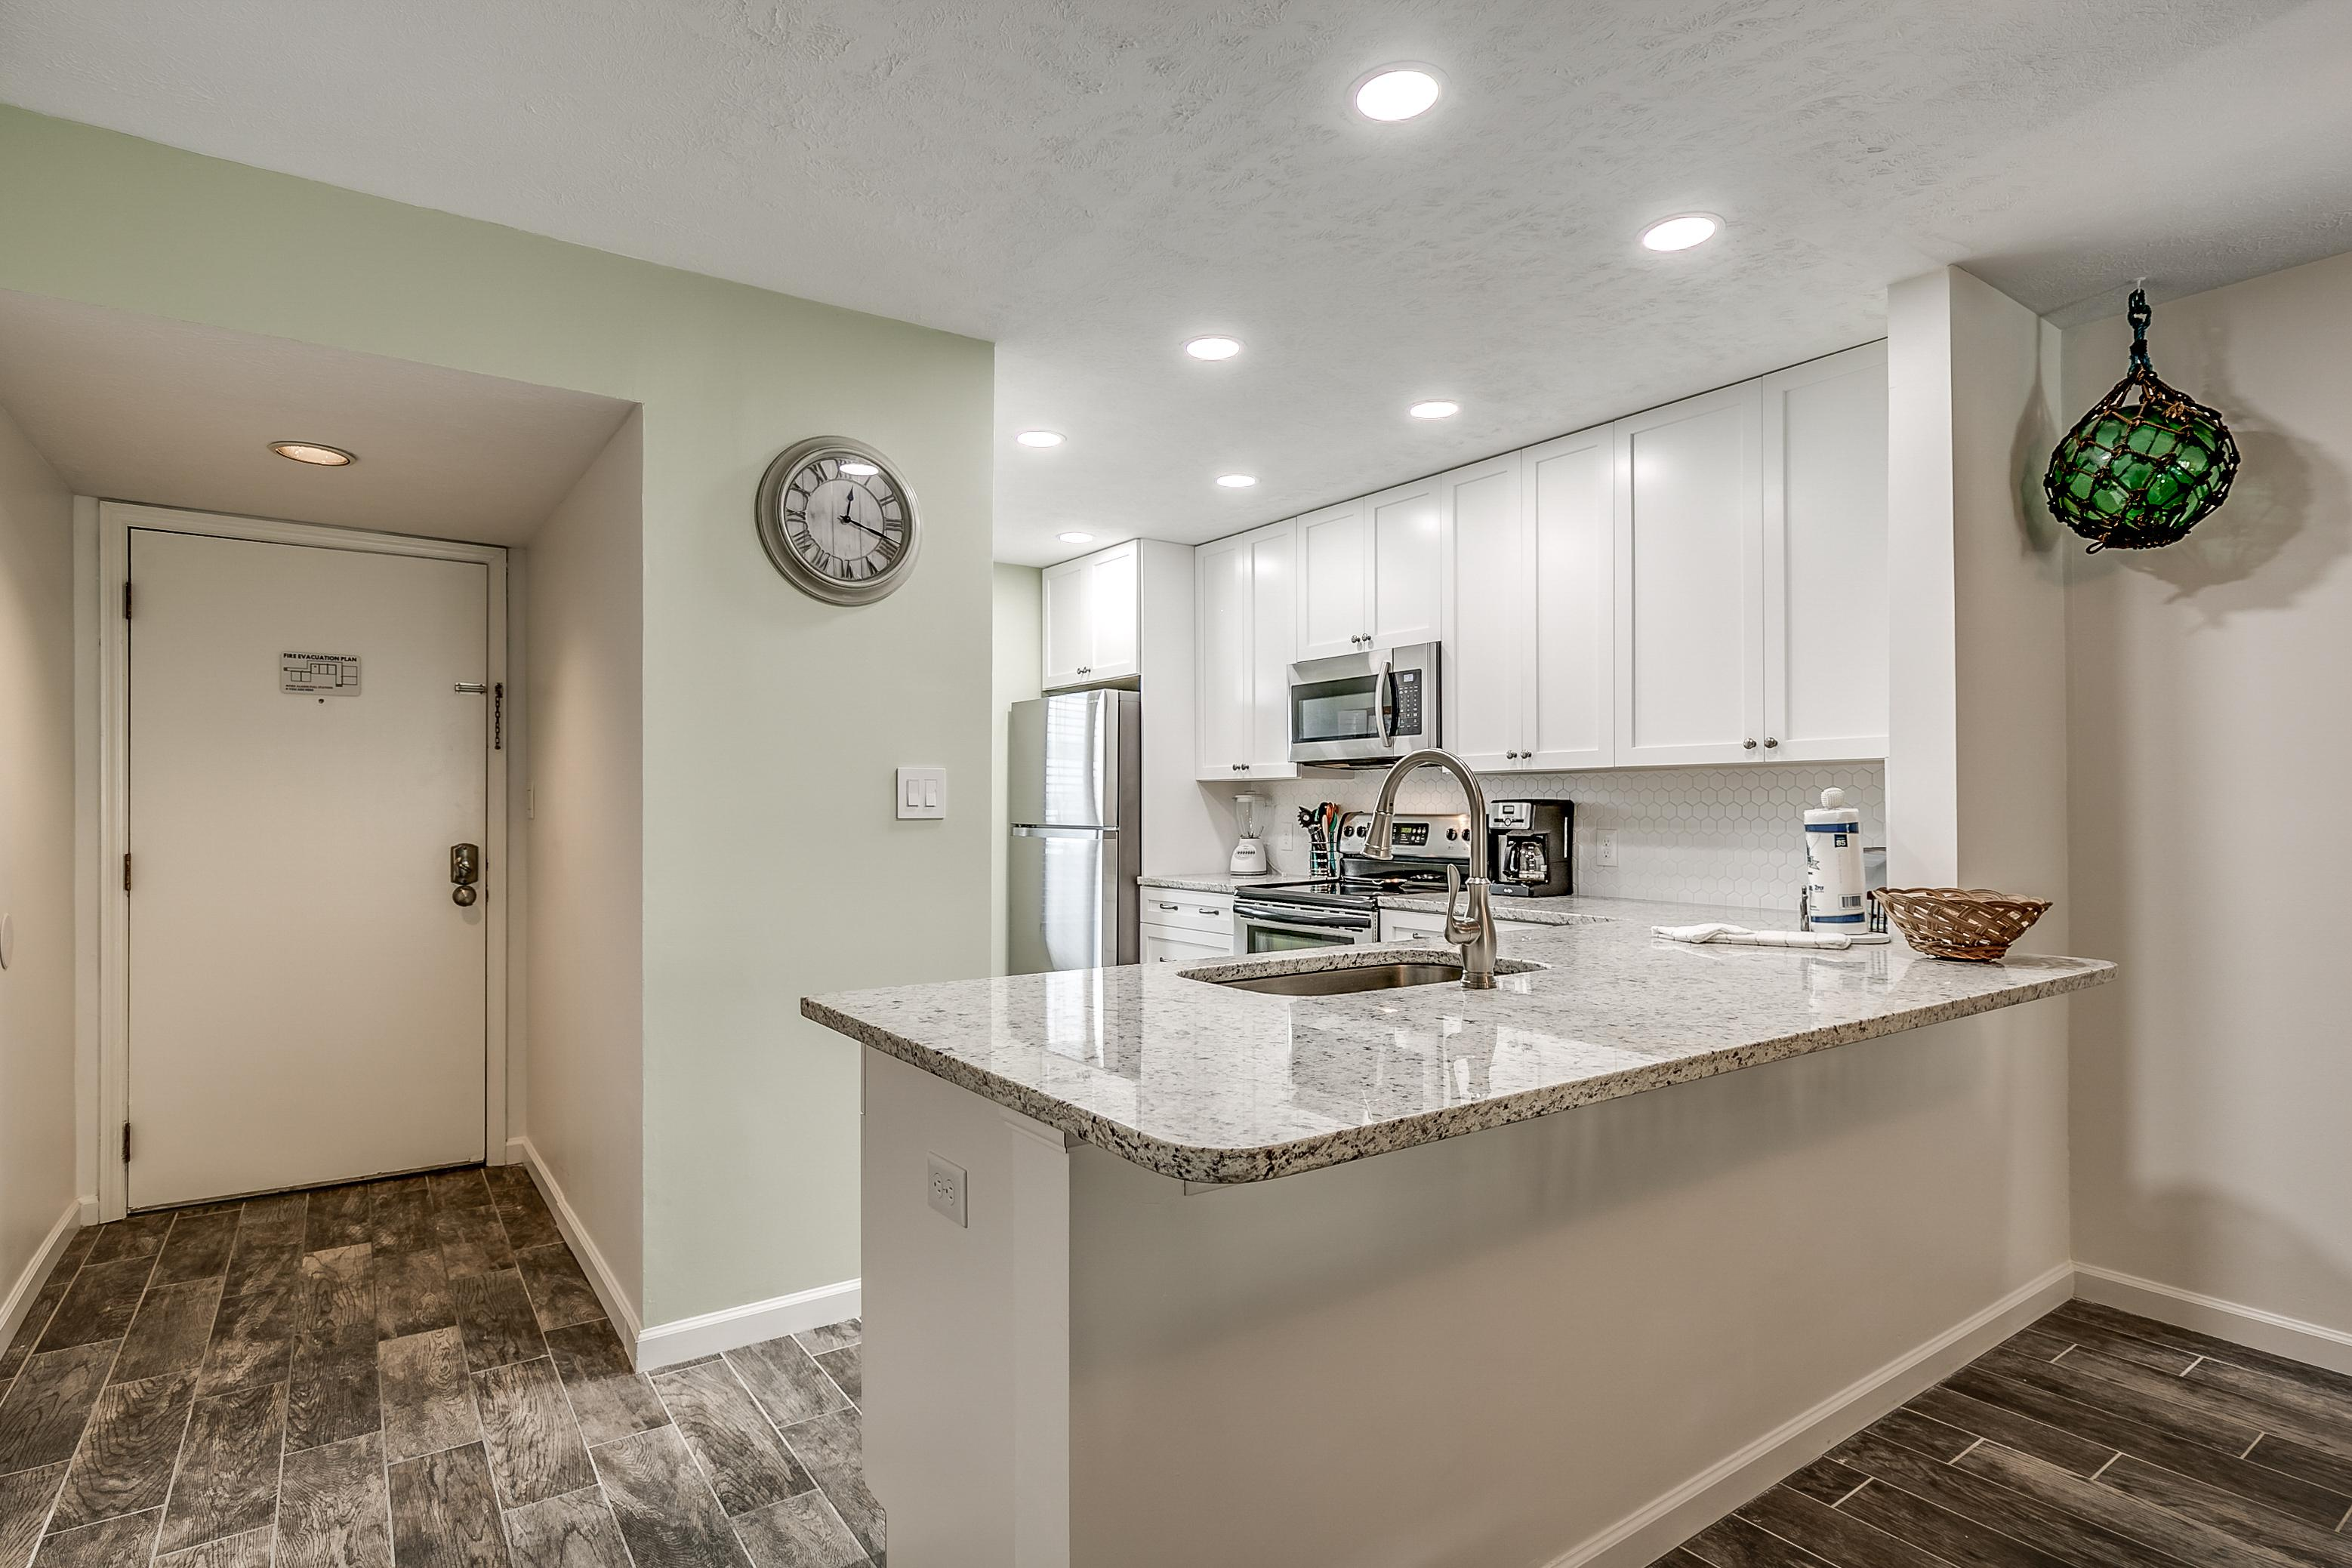 Property Image 2 - Large Condo with Remodeled Bathrooms in Golden Mile